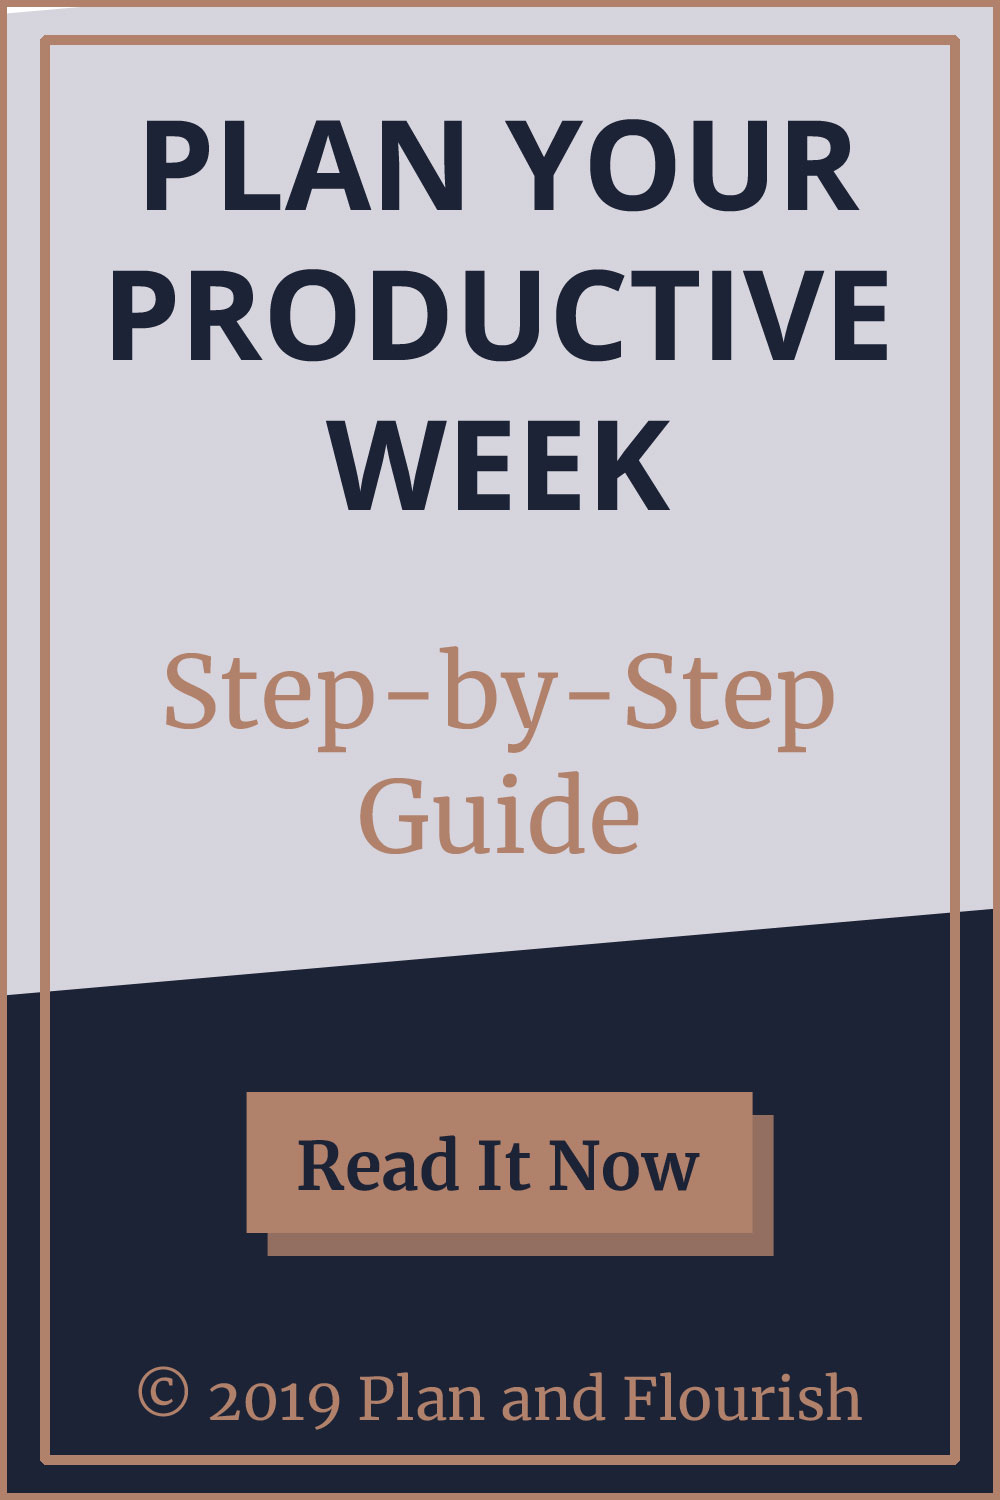 Get your step-by-step guide to planning your productive week | Read it now!